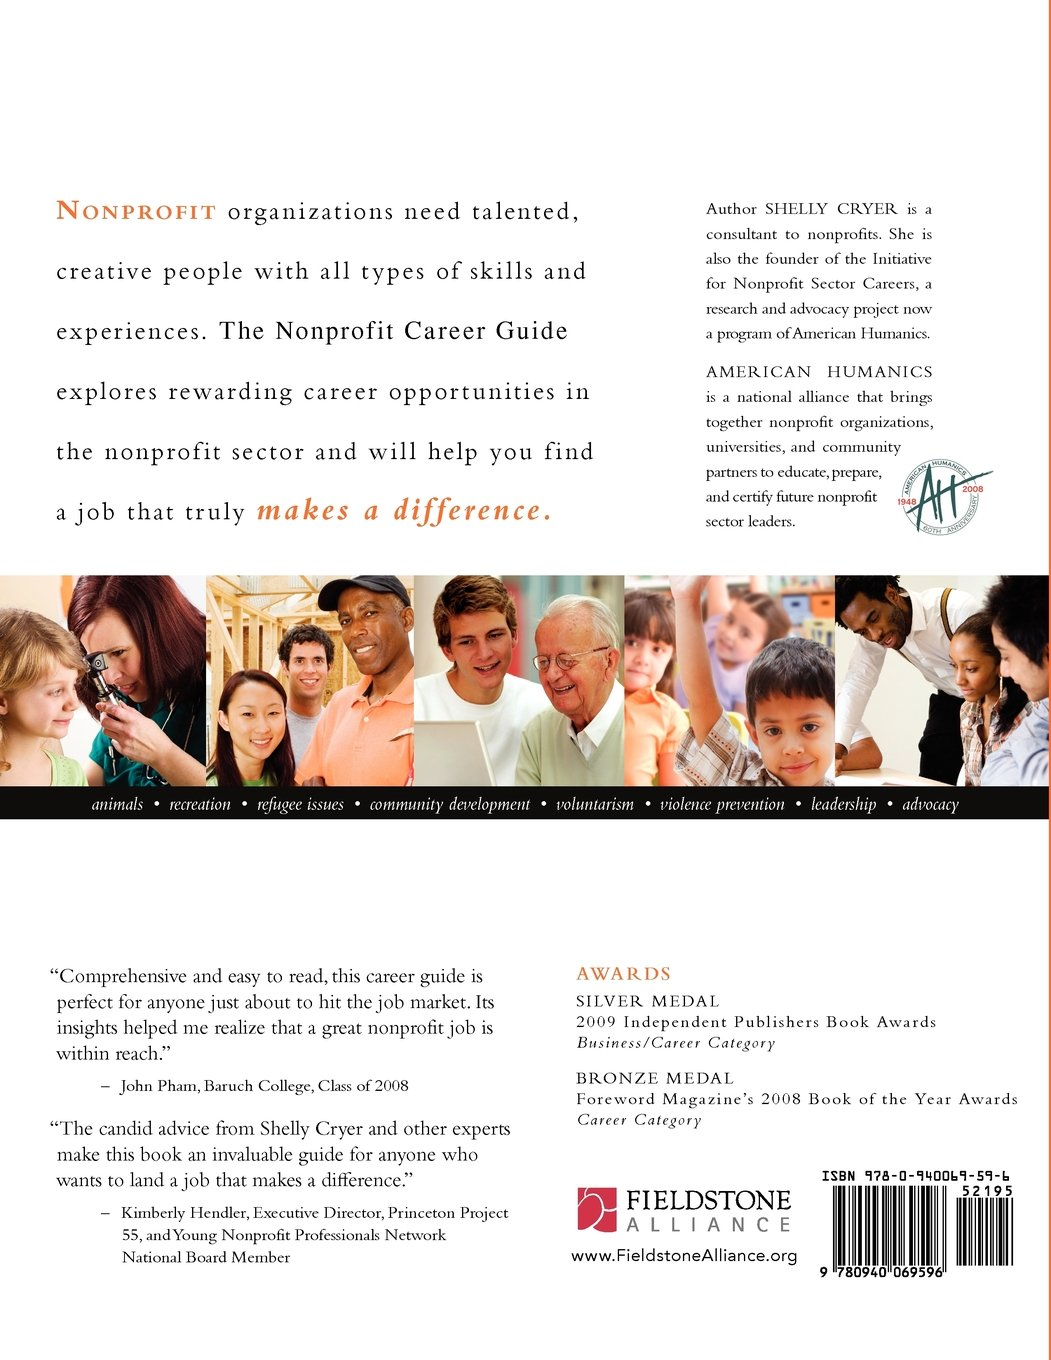 The Nonprofit Career Guide: How to Land a Job That Makes a Difference:  Shelly Cryer: 9780940069596: Amazon.com: Books